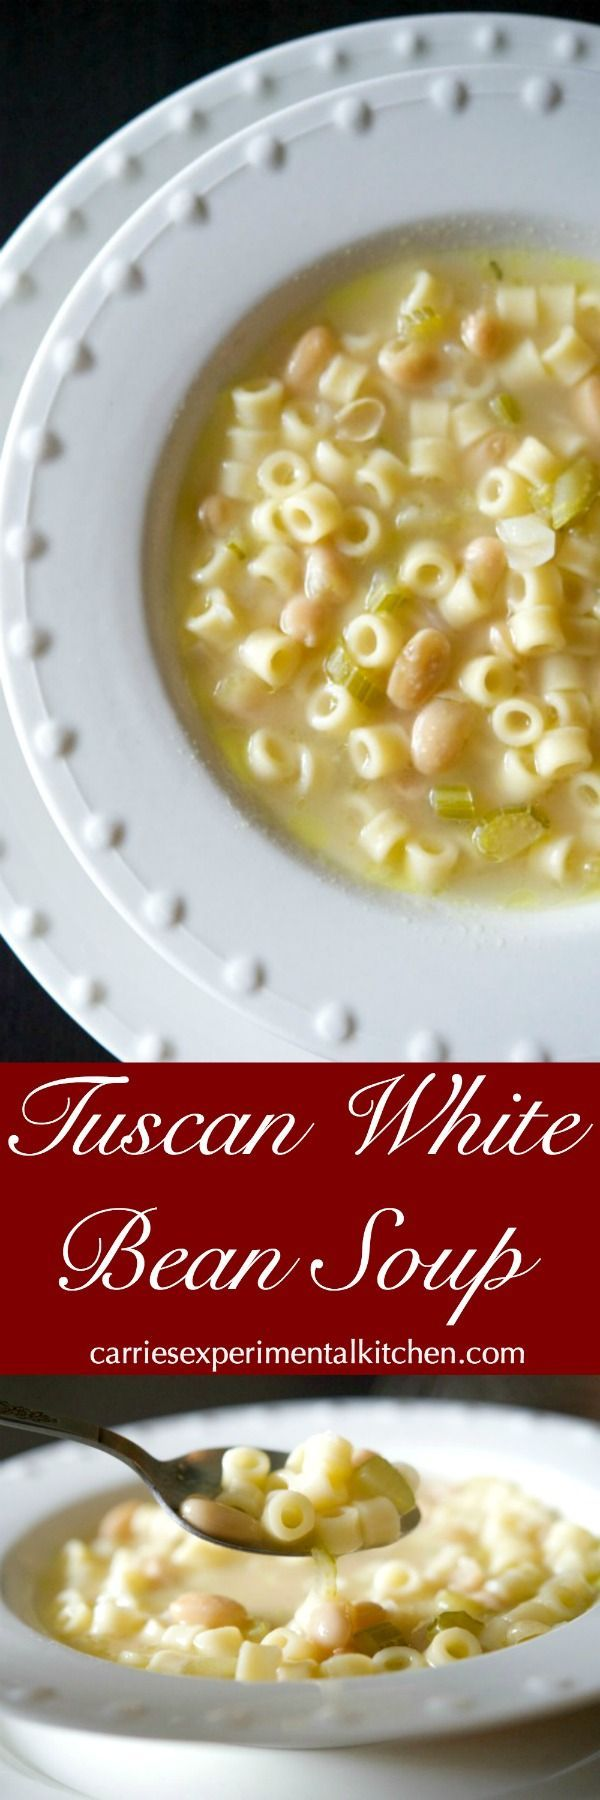 Tuscan White Bean Soup is a hearty, delicious Italian soup made with simple ingredients like celery, cannellini beans, Ditalini pasta and chicken broth.#soup via @CarriesExpKtchn